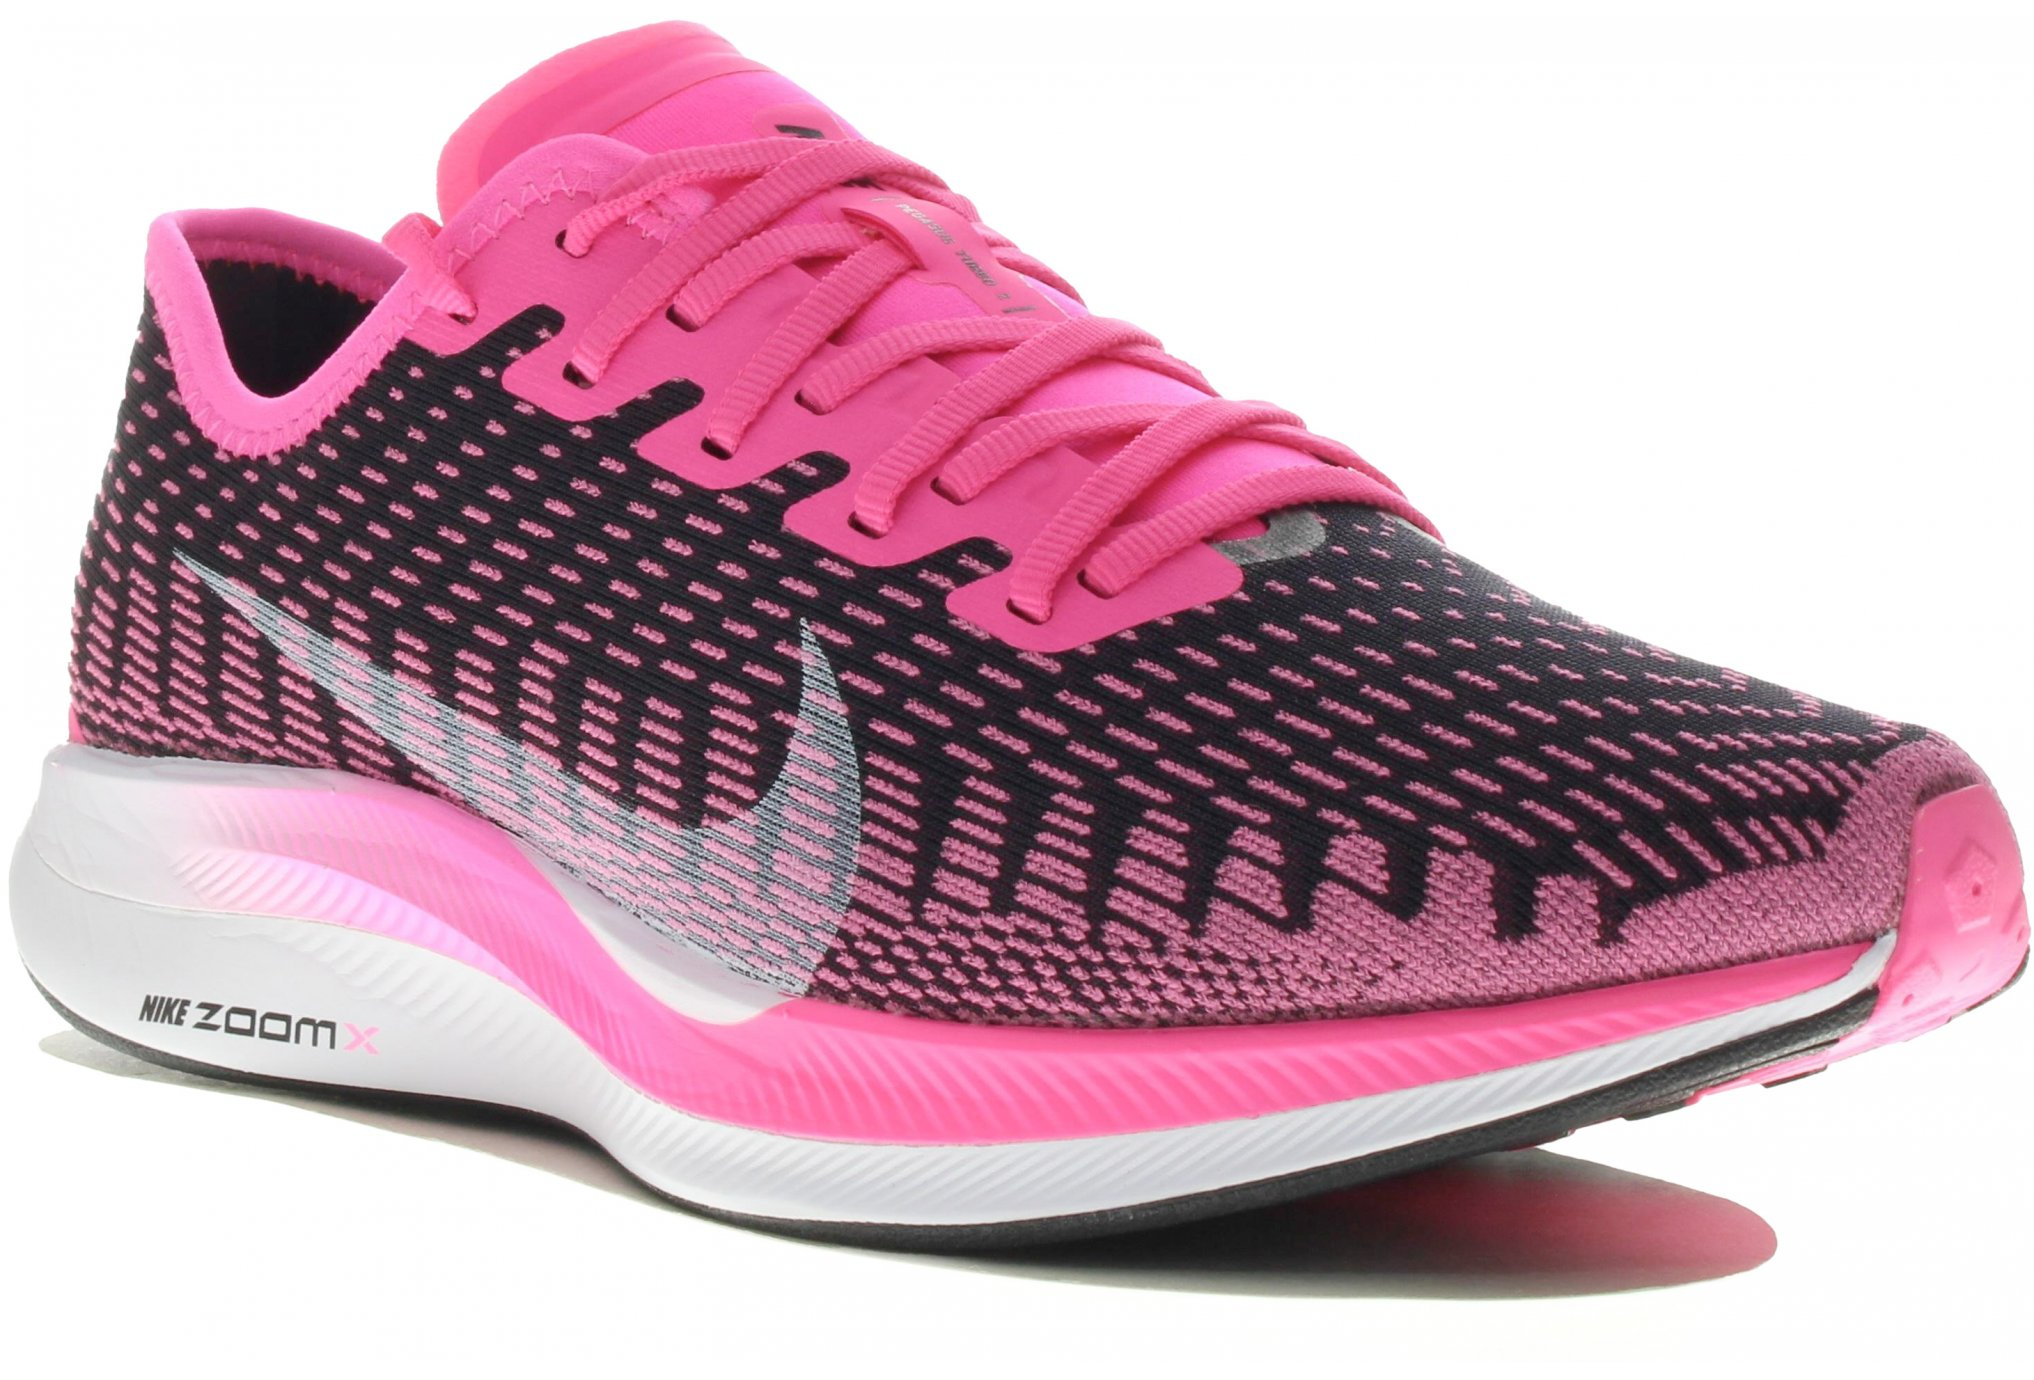 Nike Zoom Pegasus Turbo 2 W Chaussures running femme